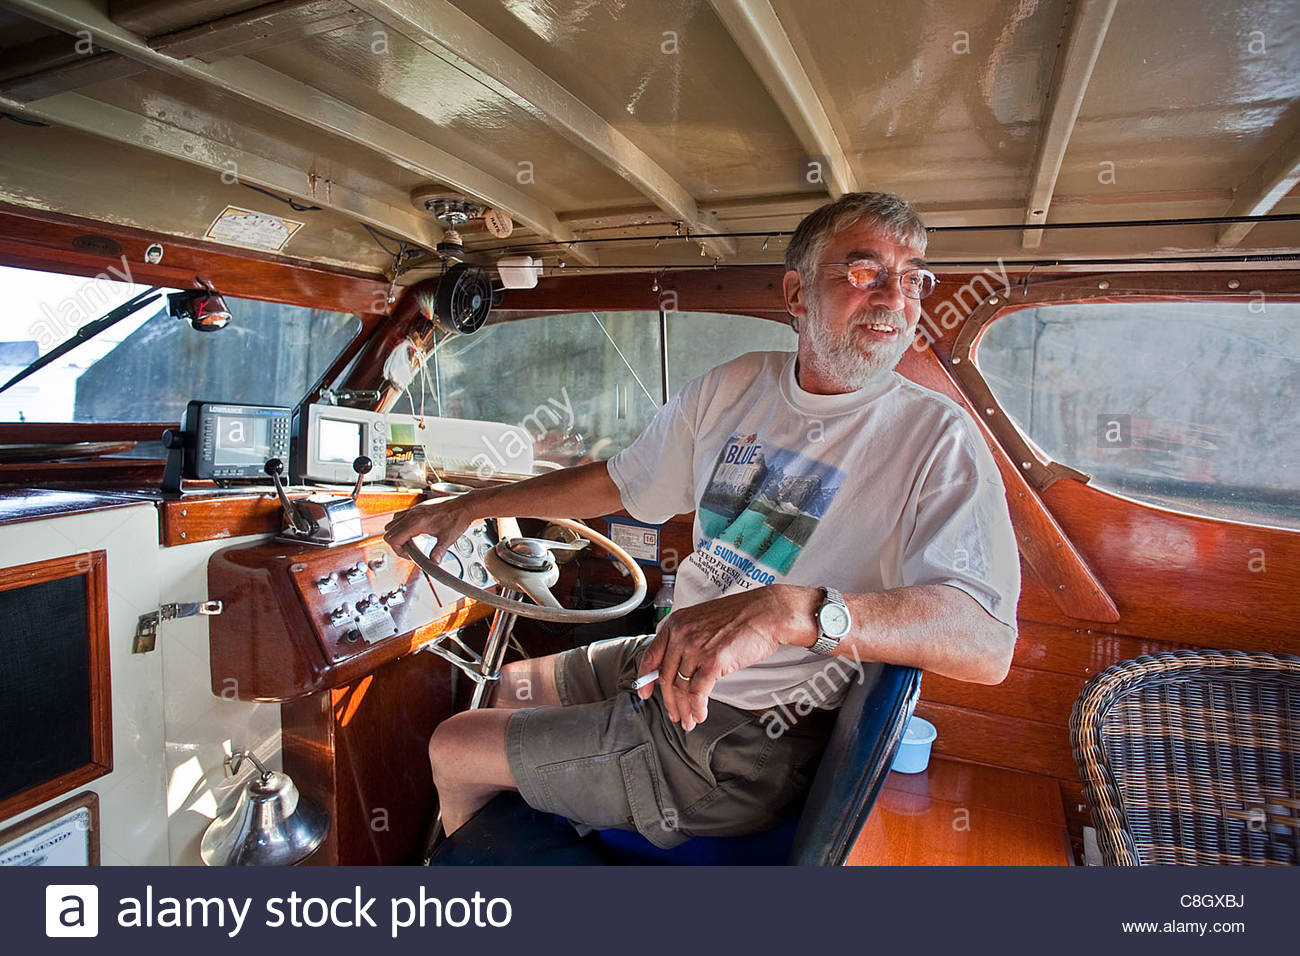 A fishing guide at the wheel of his antique fishing boat. - Stock Image